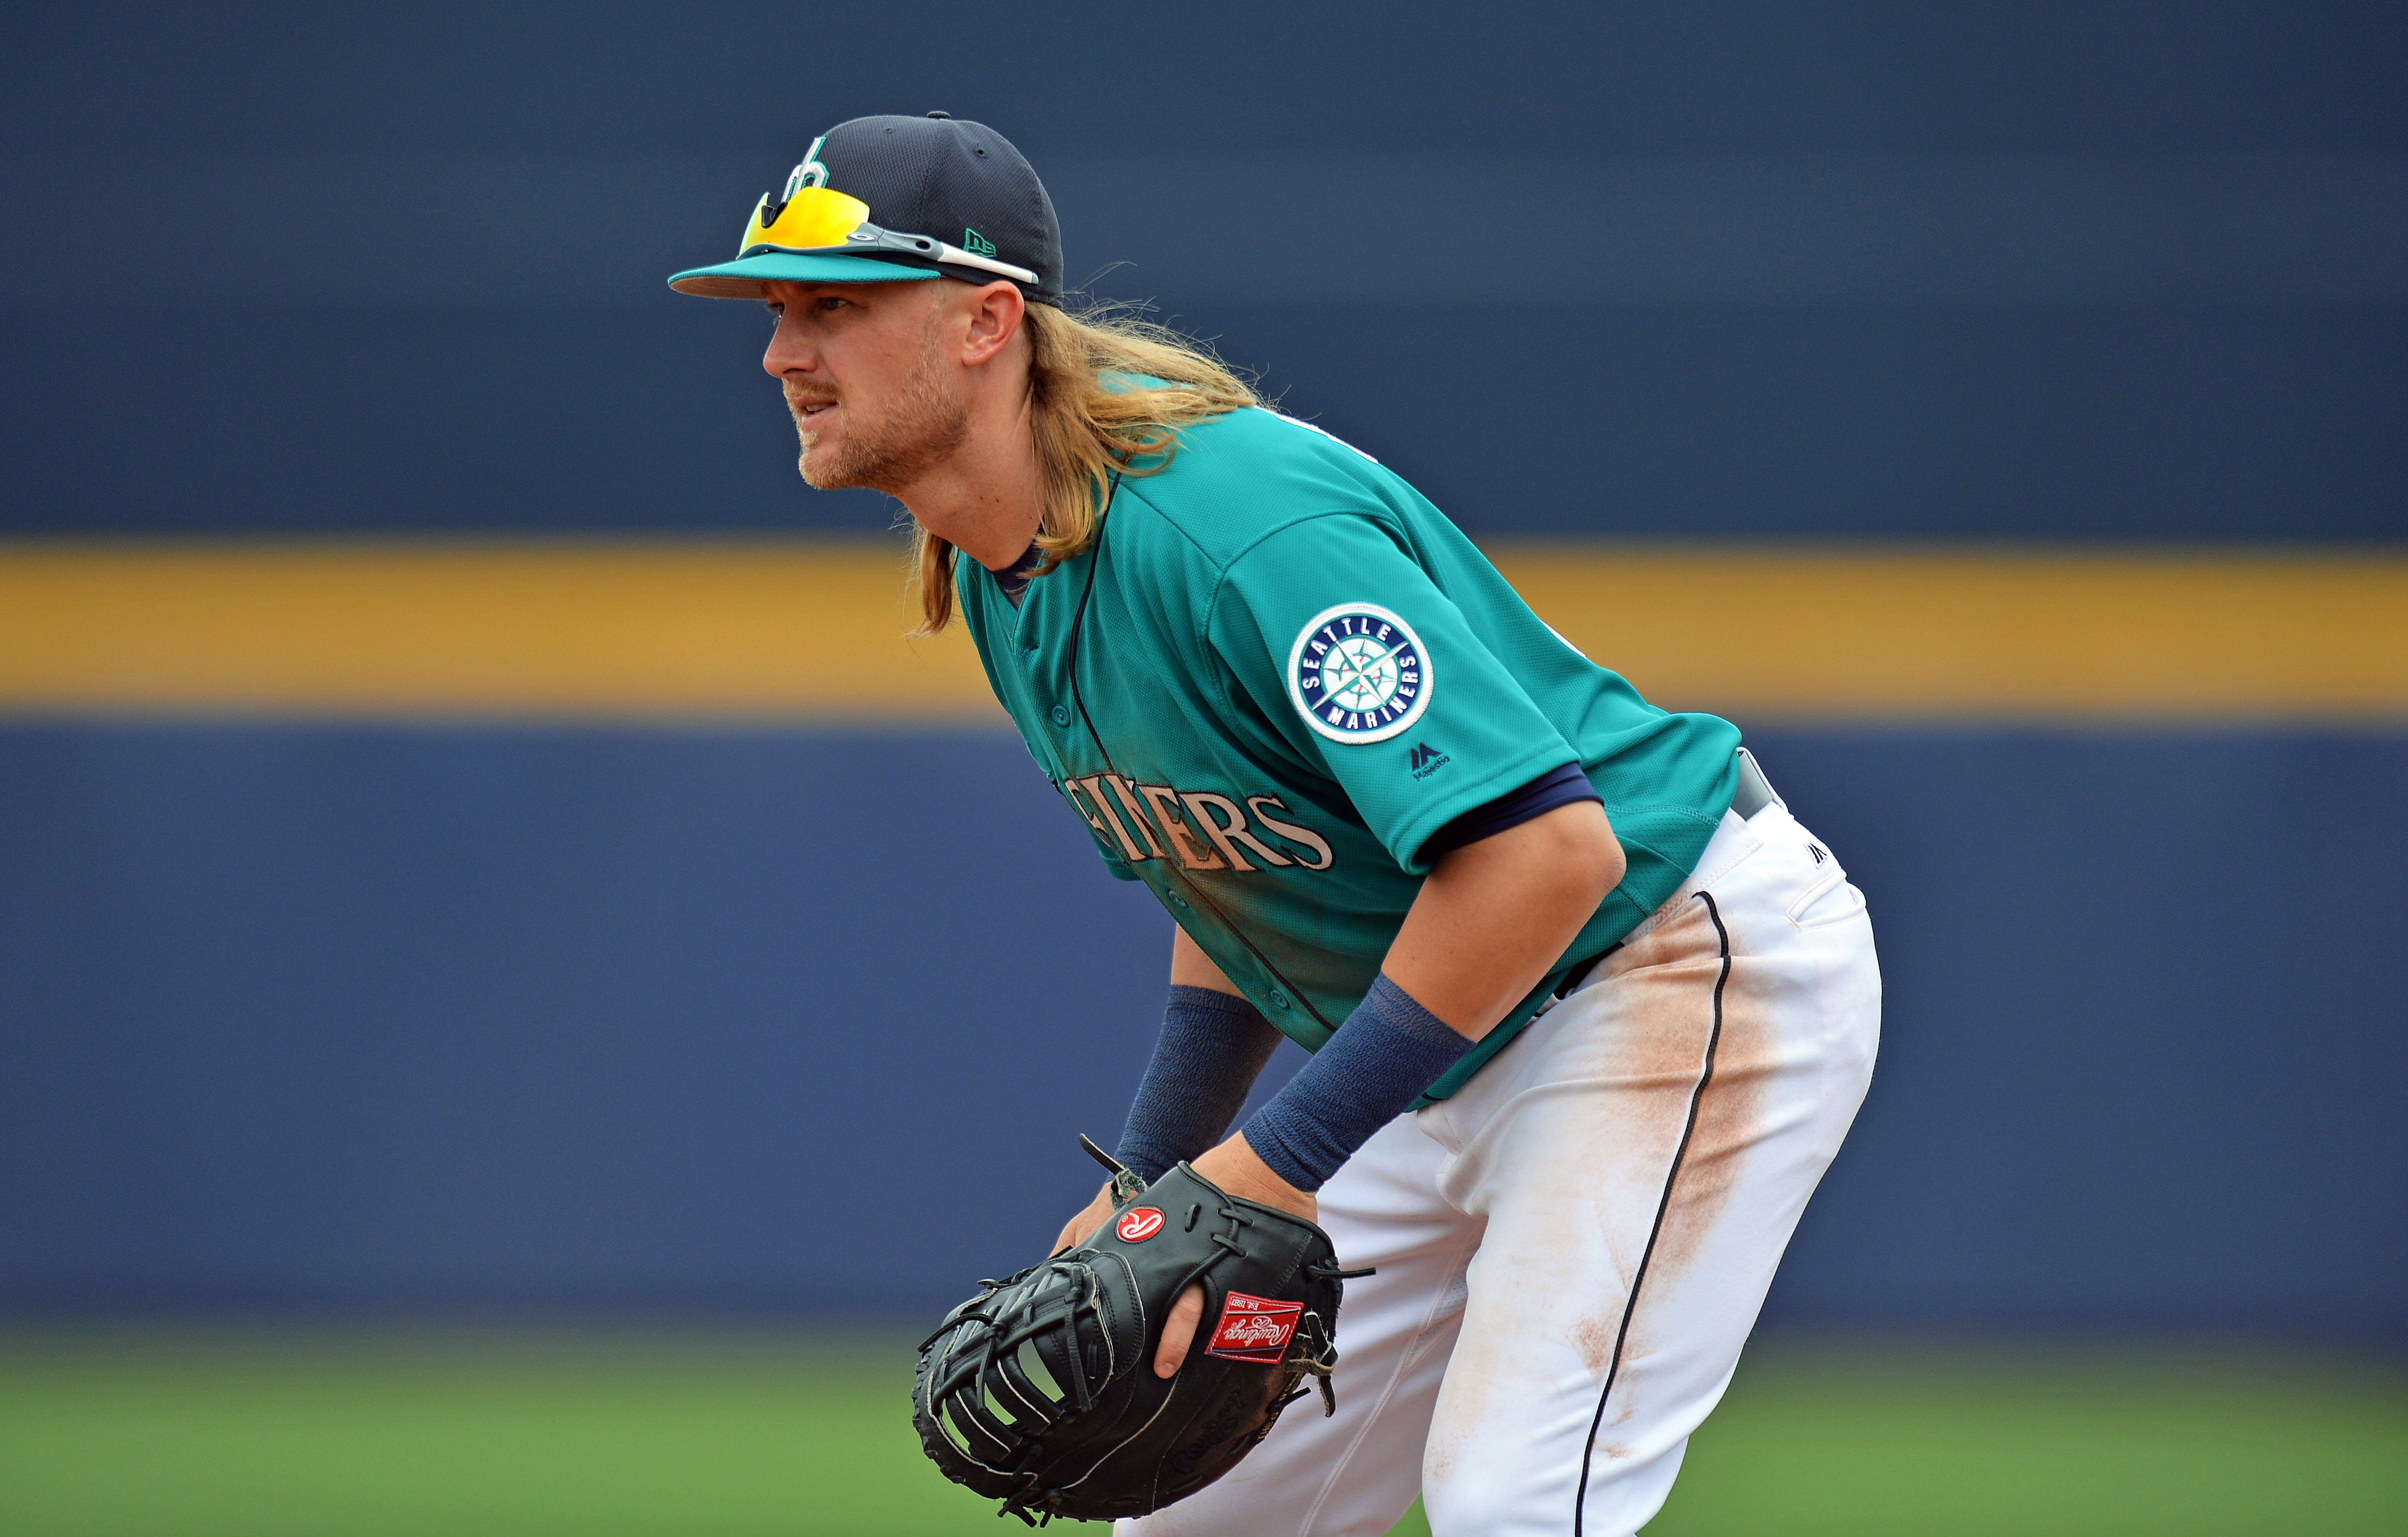 9964983-mlb-spring-training-los-angeles-angels-at-seattle-mariners